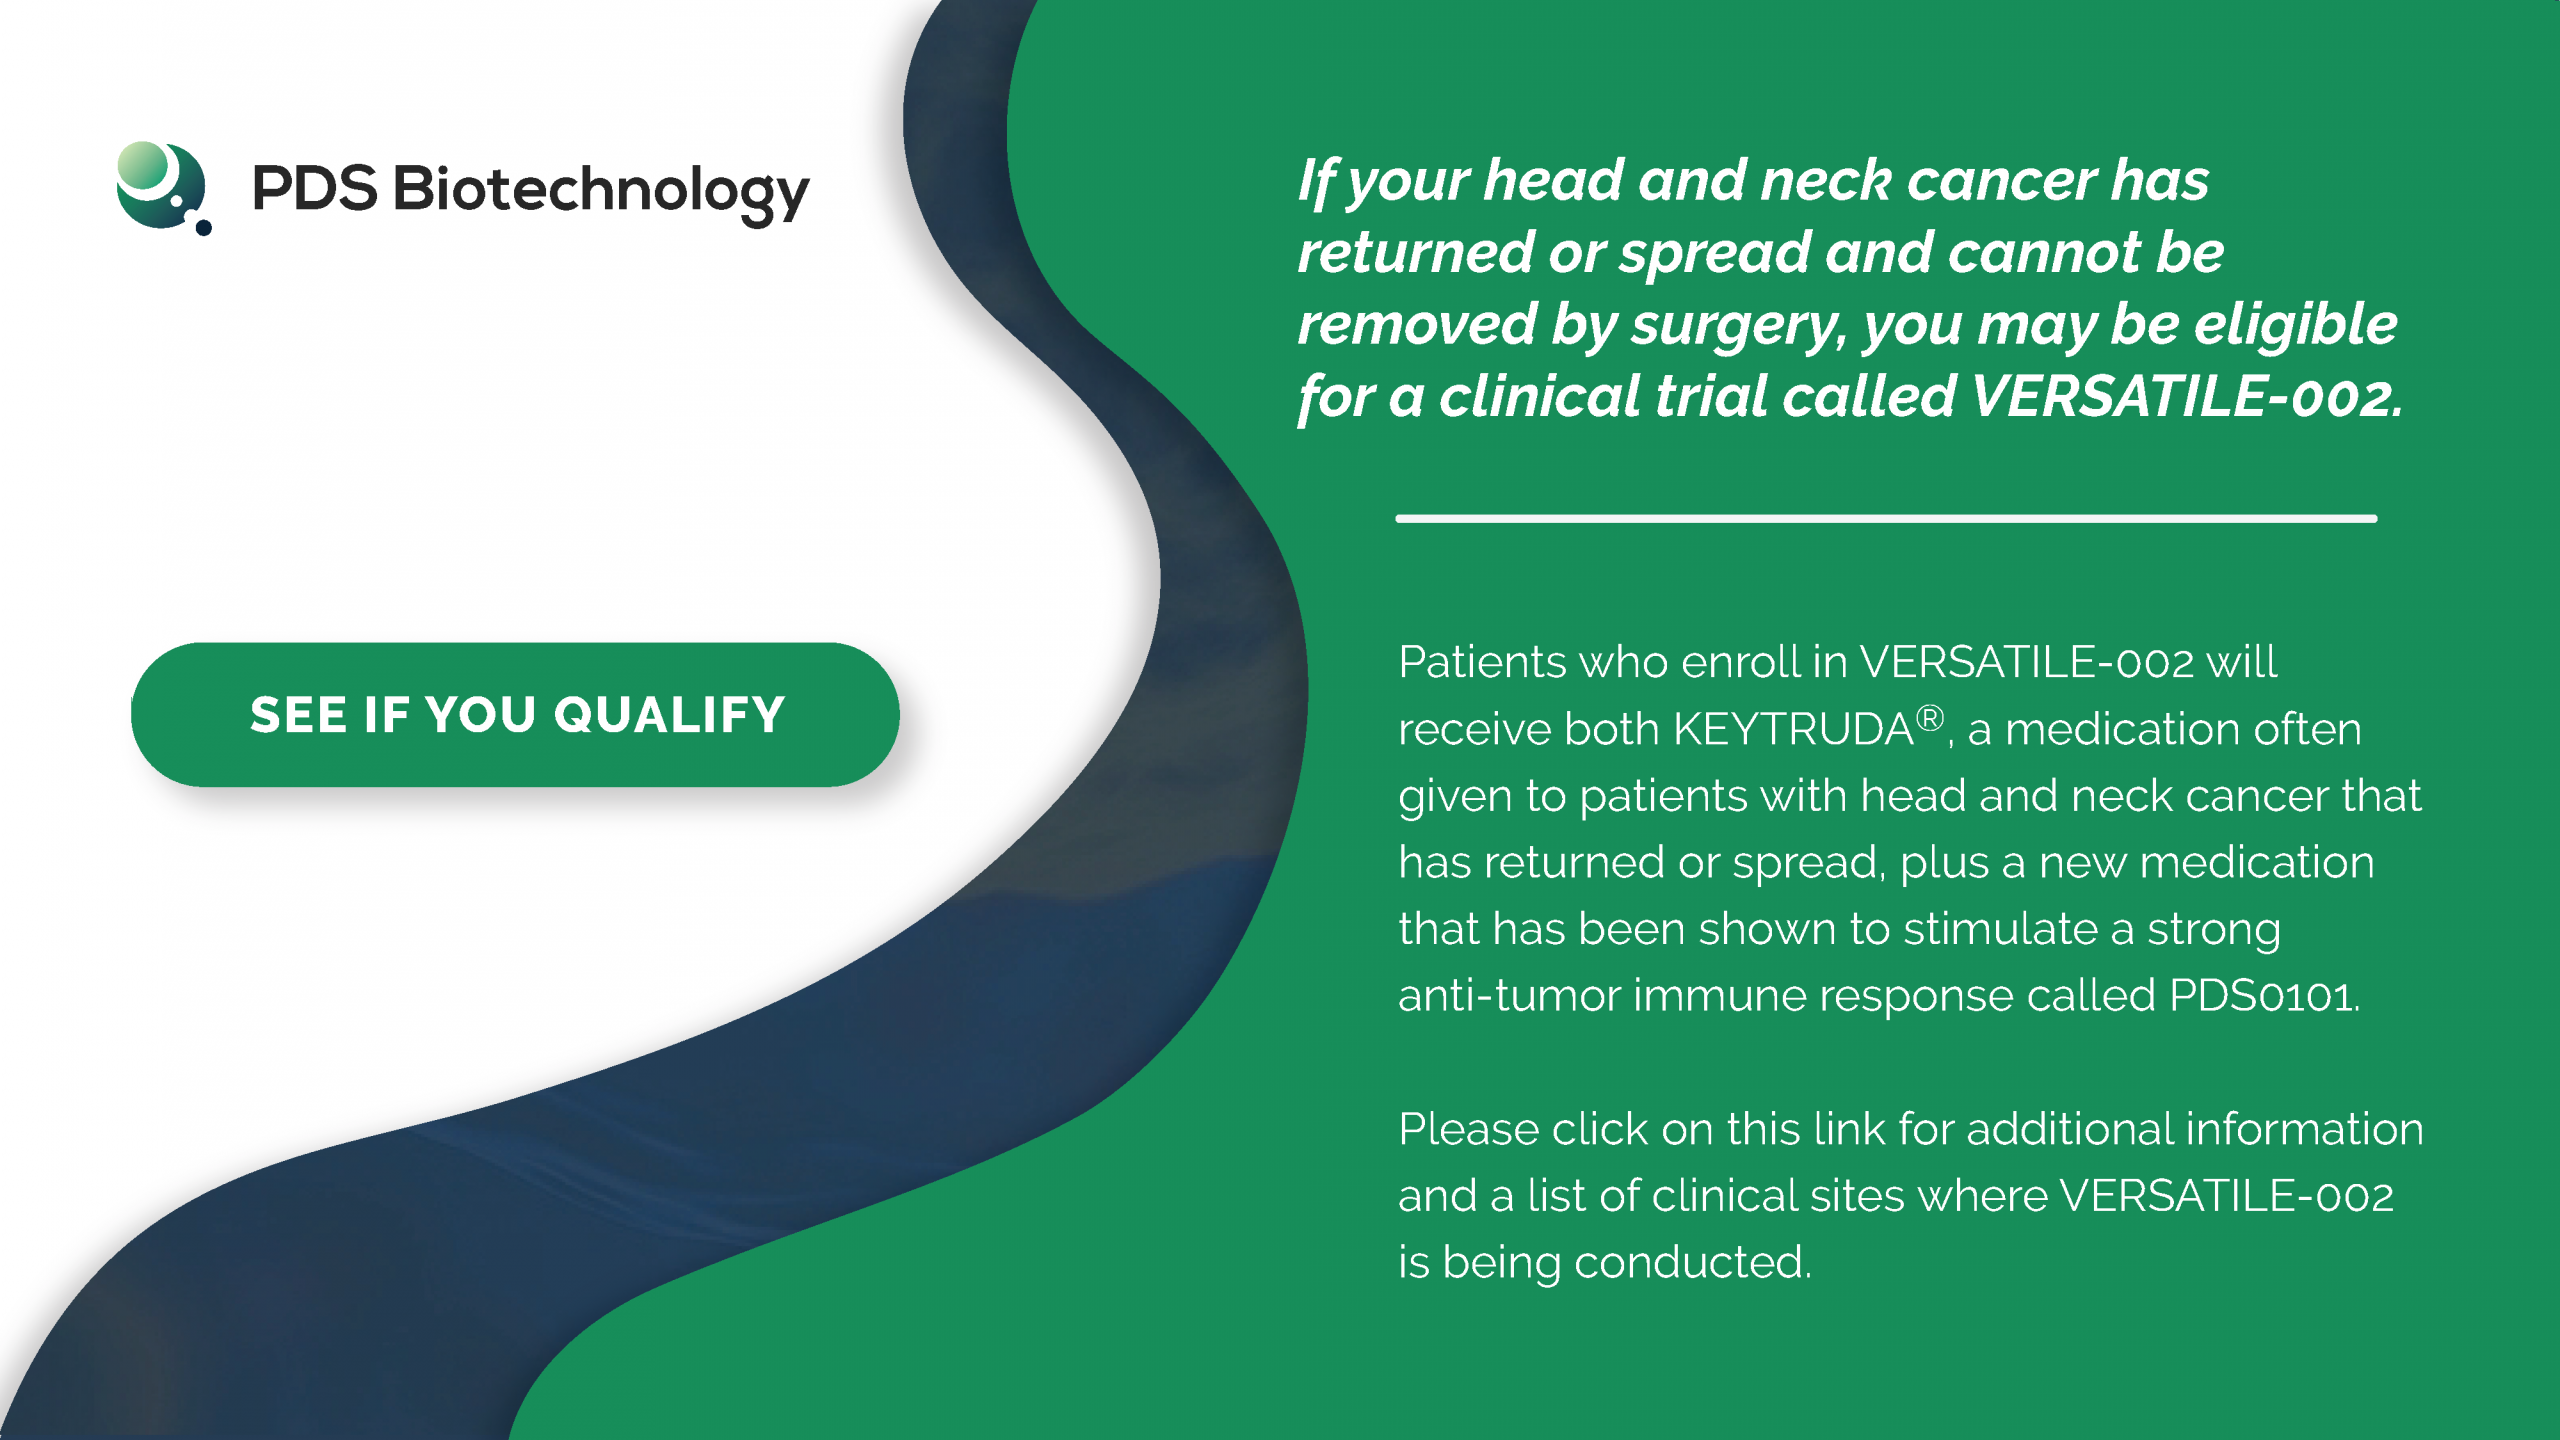 Image for VERSATILE-002 - A PDS Biotechnology Trial in Head & Neck Squamous Carcinoma Cancer